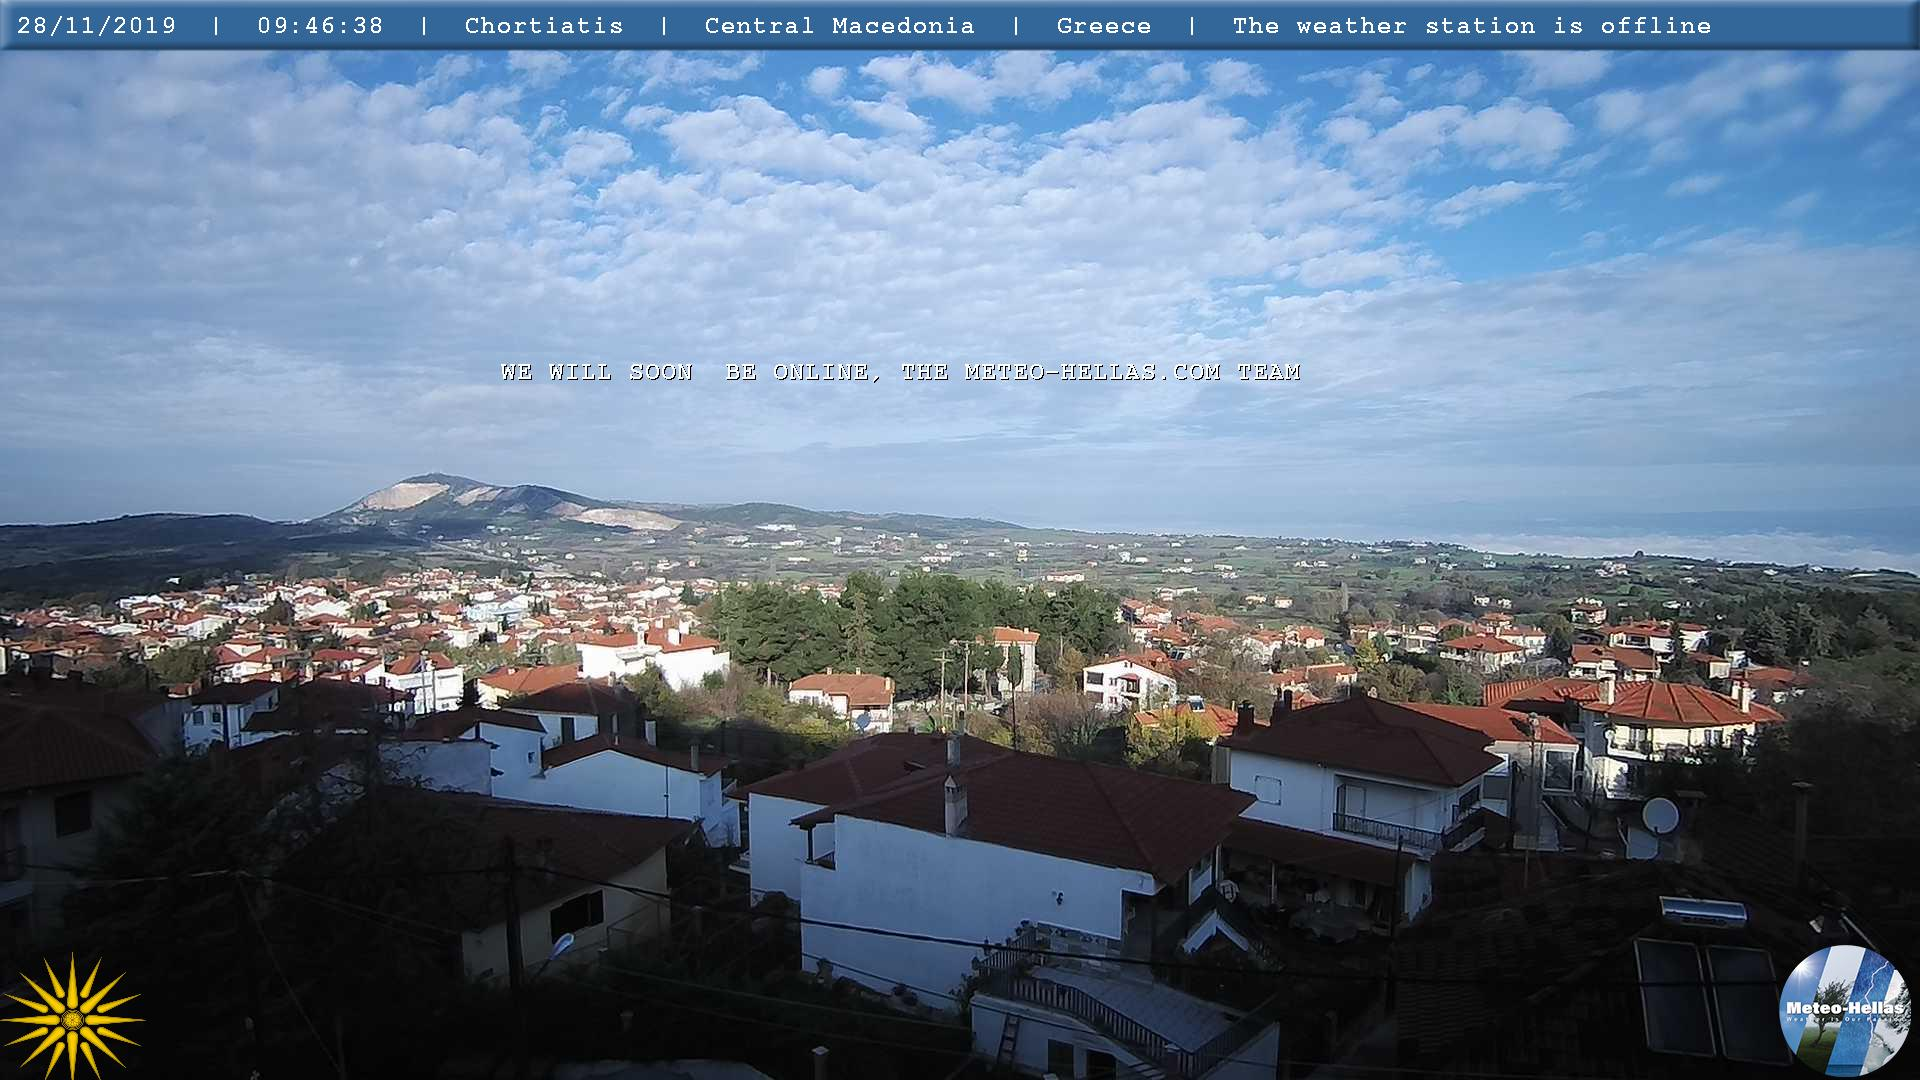 Webcam Thessaloniki - Chortiatis